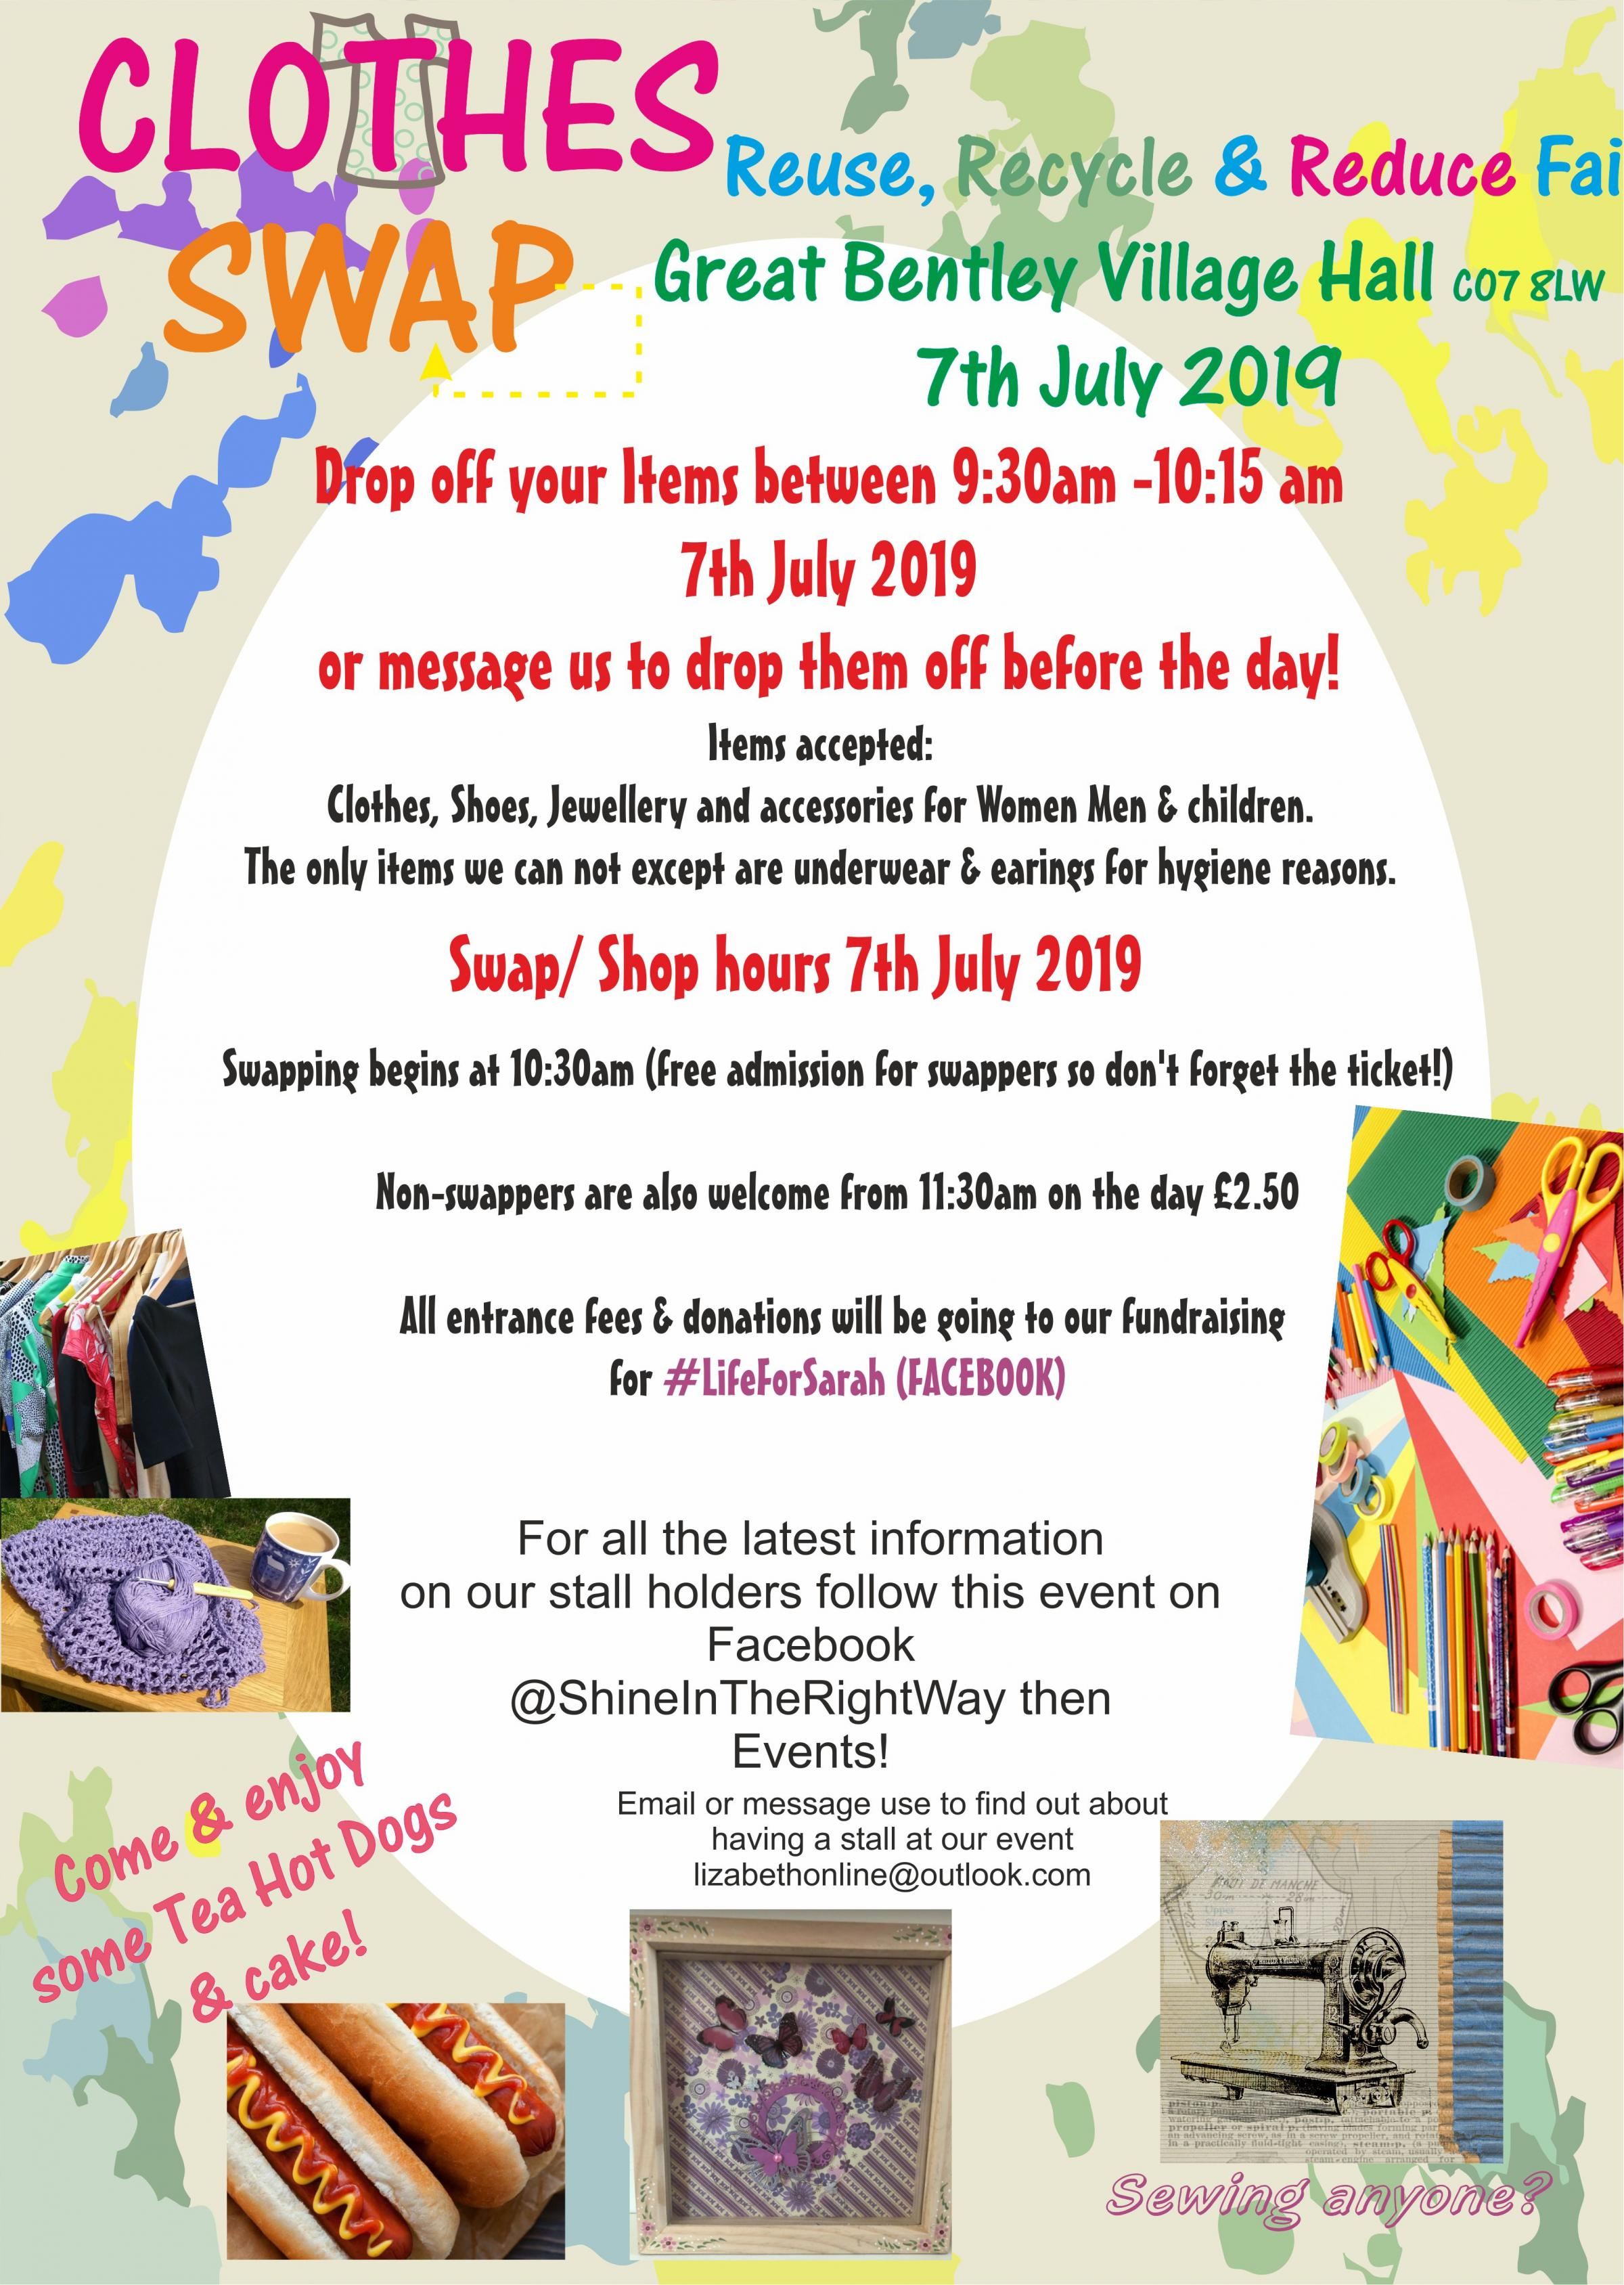 Clothes Swap Reuse Recycle & Reduce